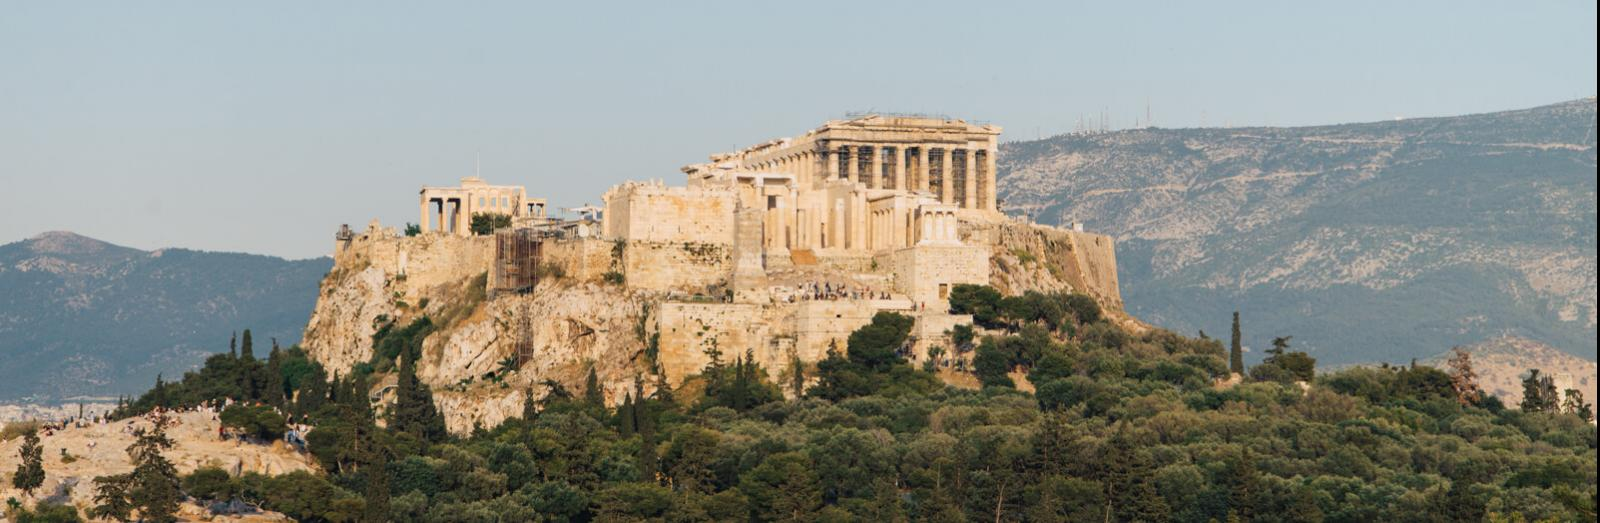 Athens - Greece - images